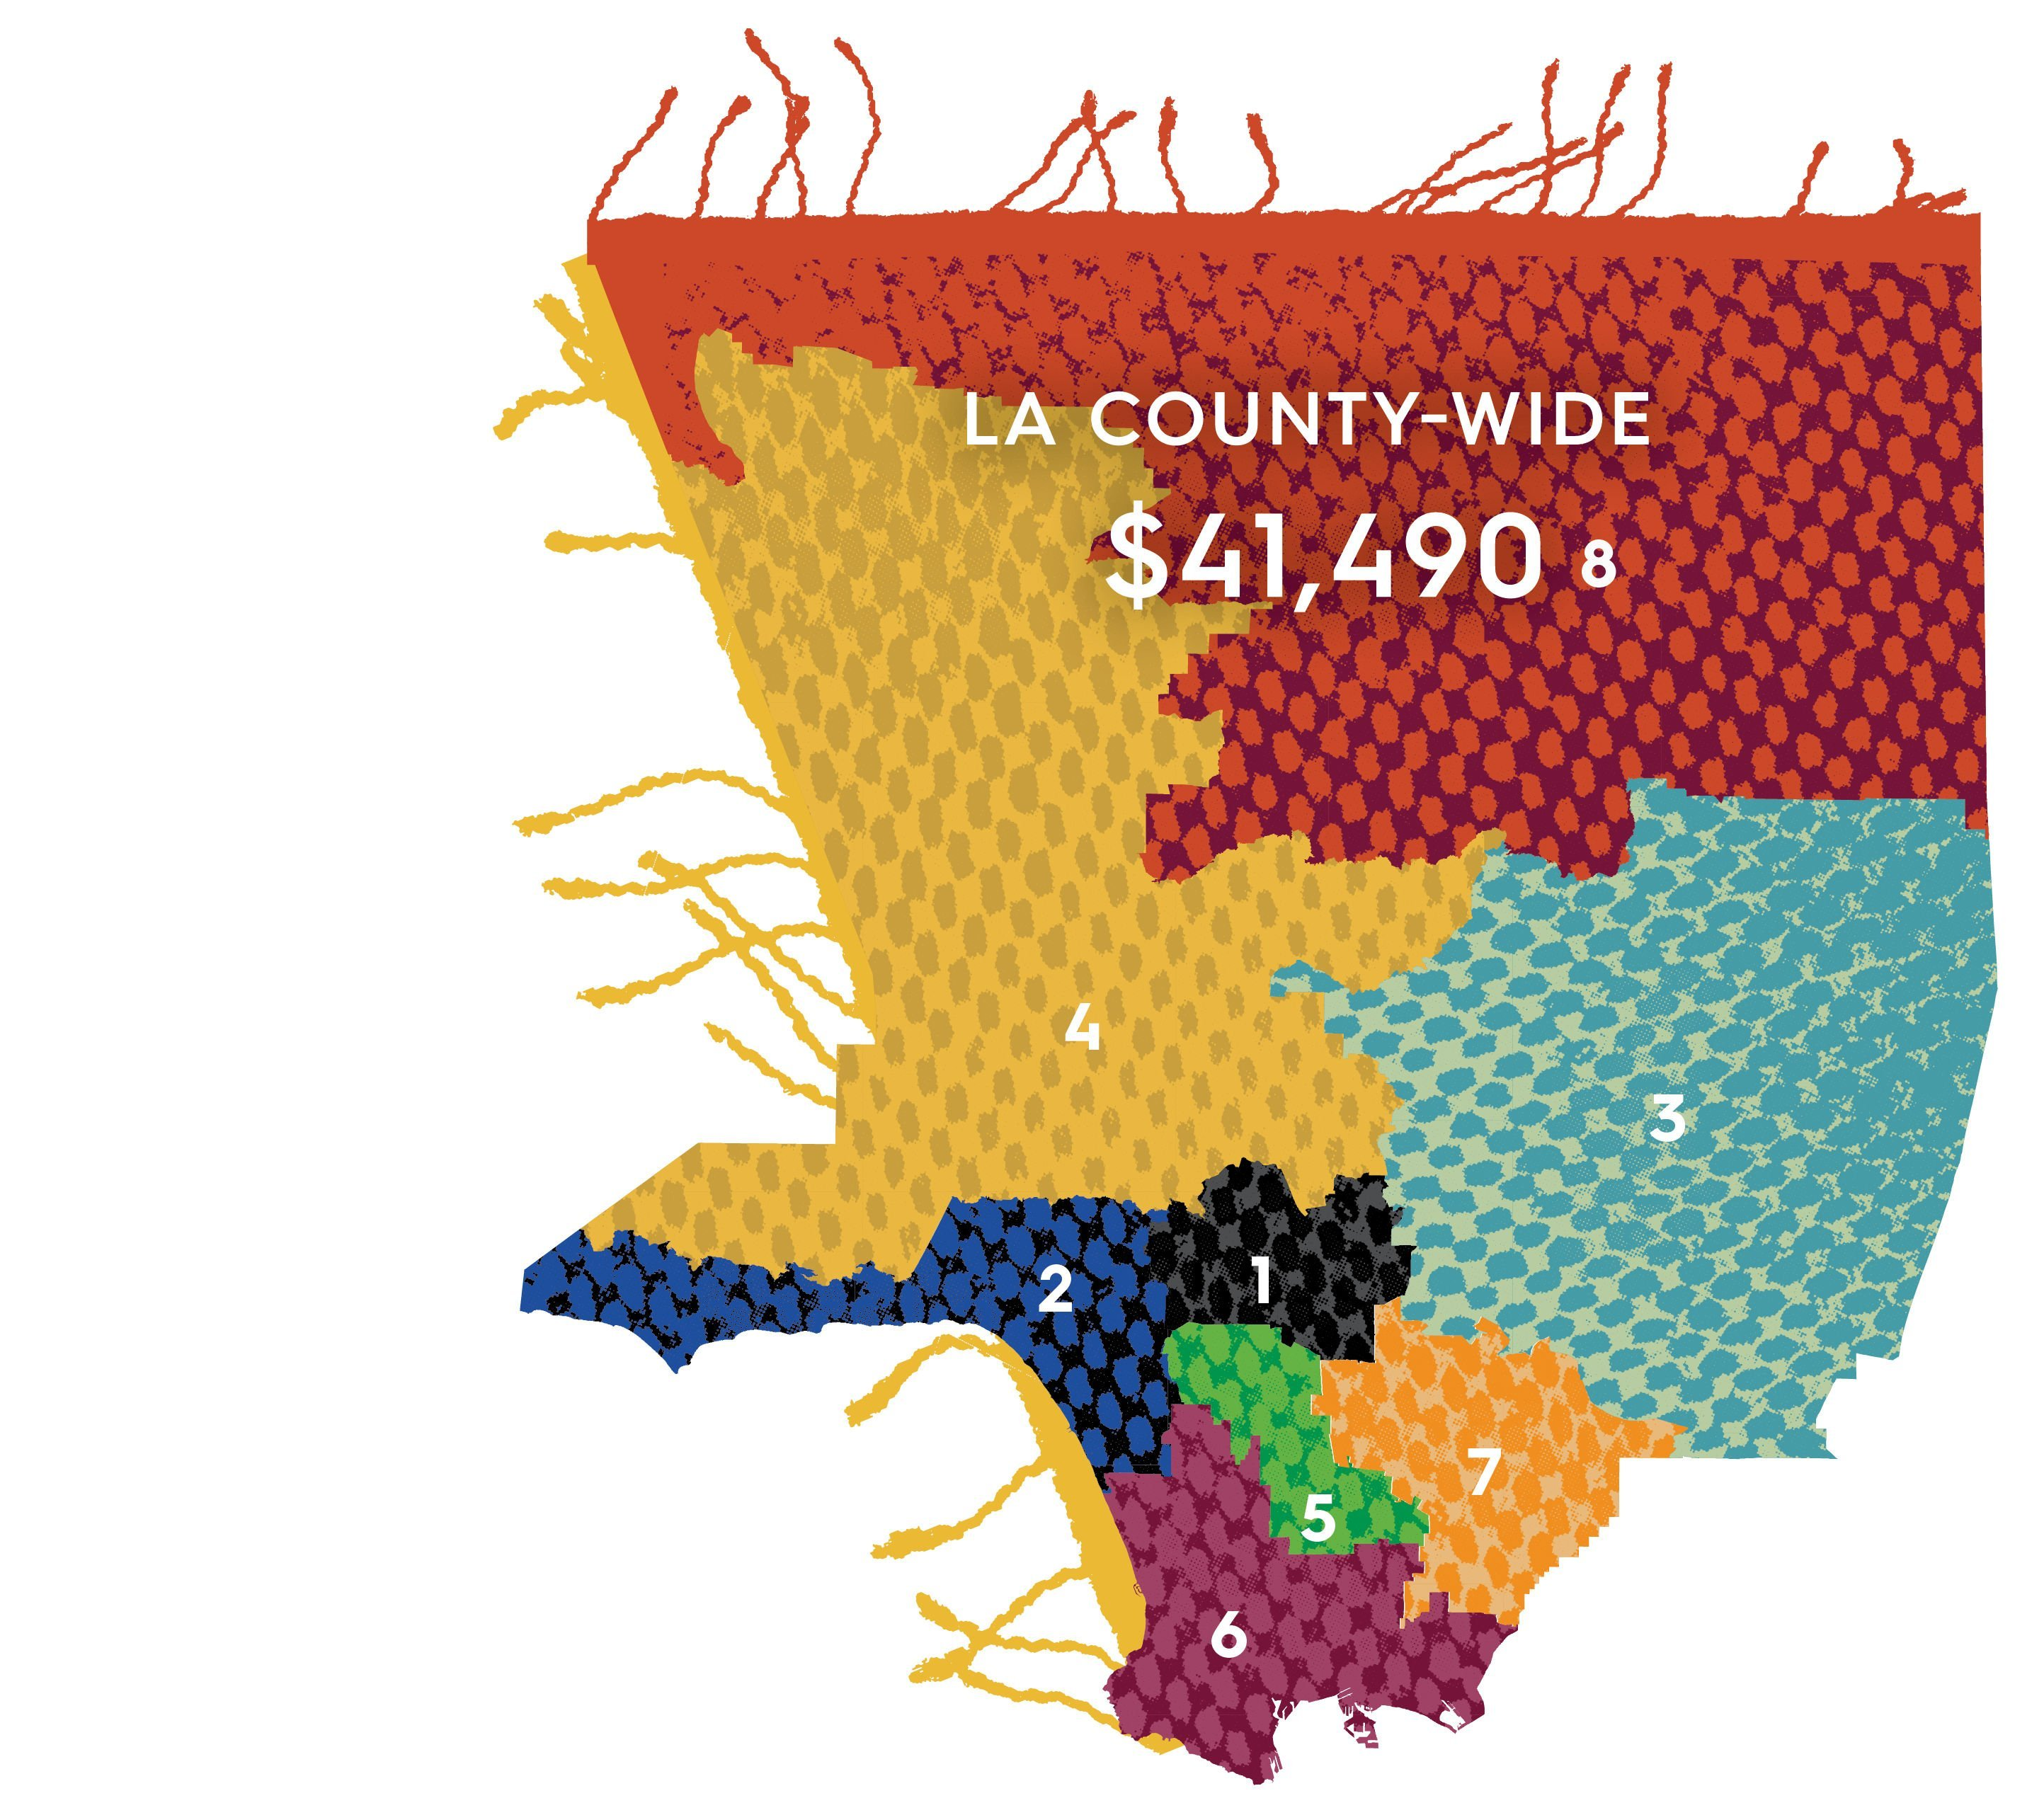 LA COUNTY GRANT DISTRIBUTION